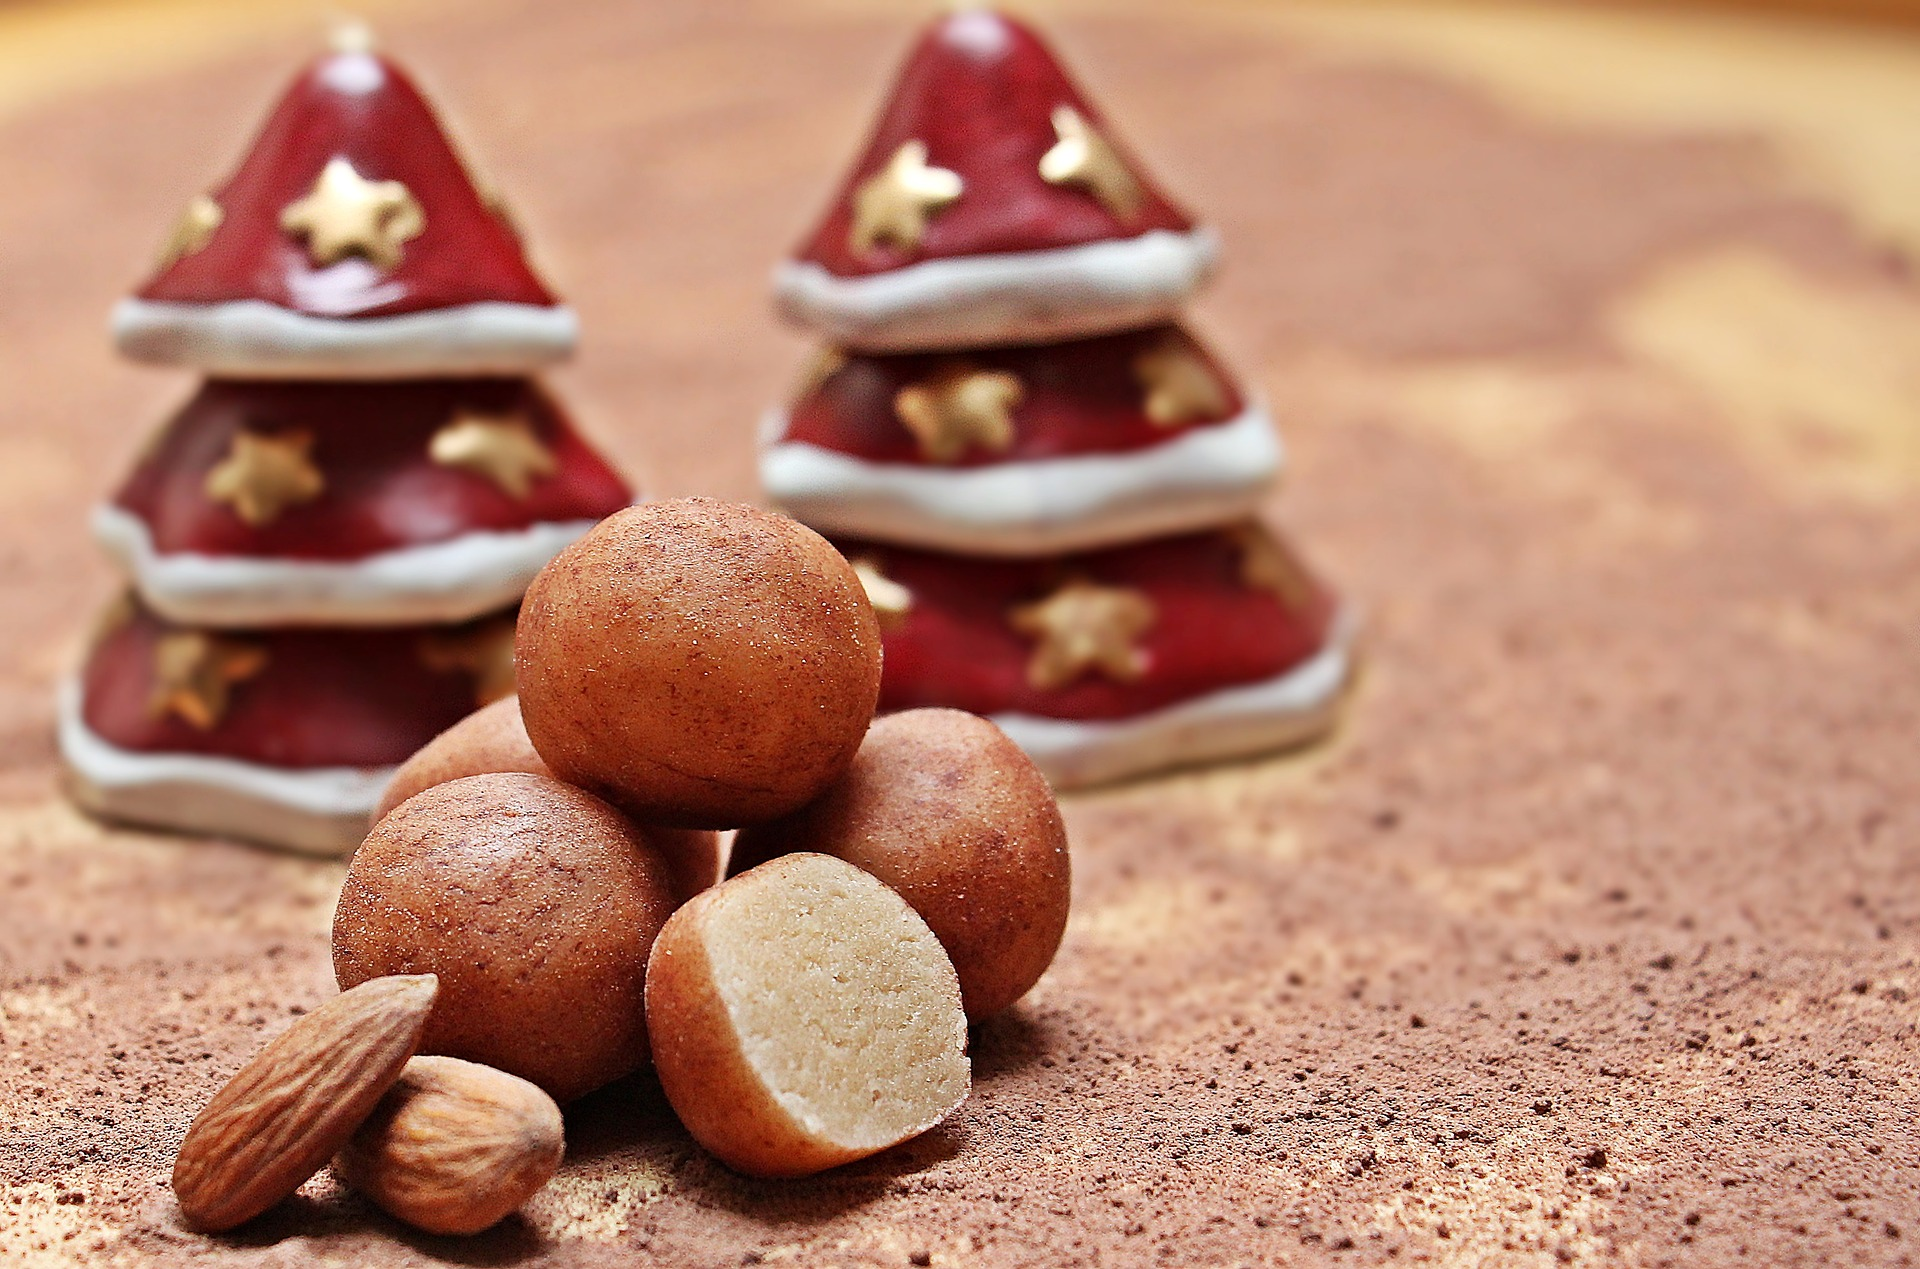 marzipan, marzipankartoffeln, potato, balls, sugar Germany, dessert, christmas, festive, baking, recipes